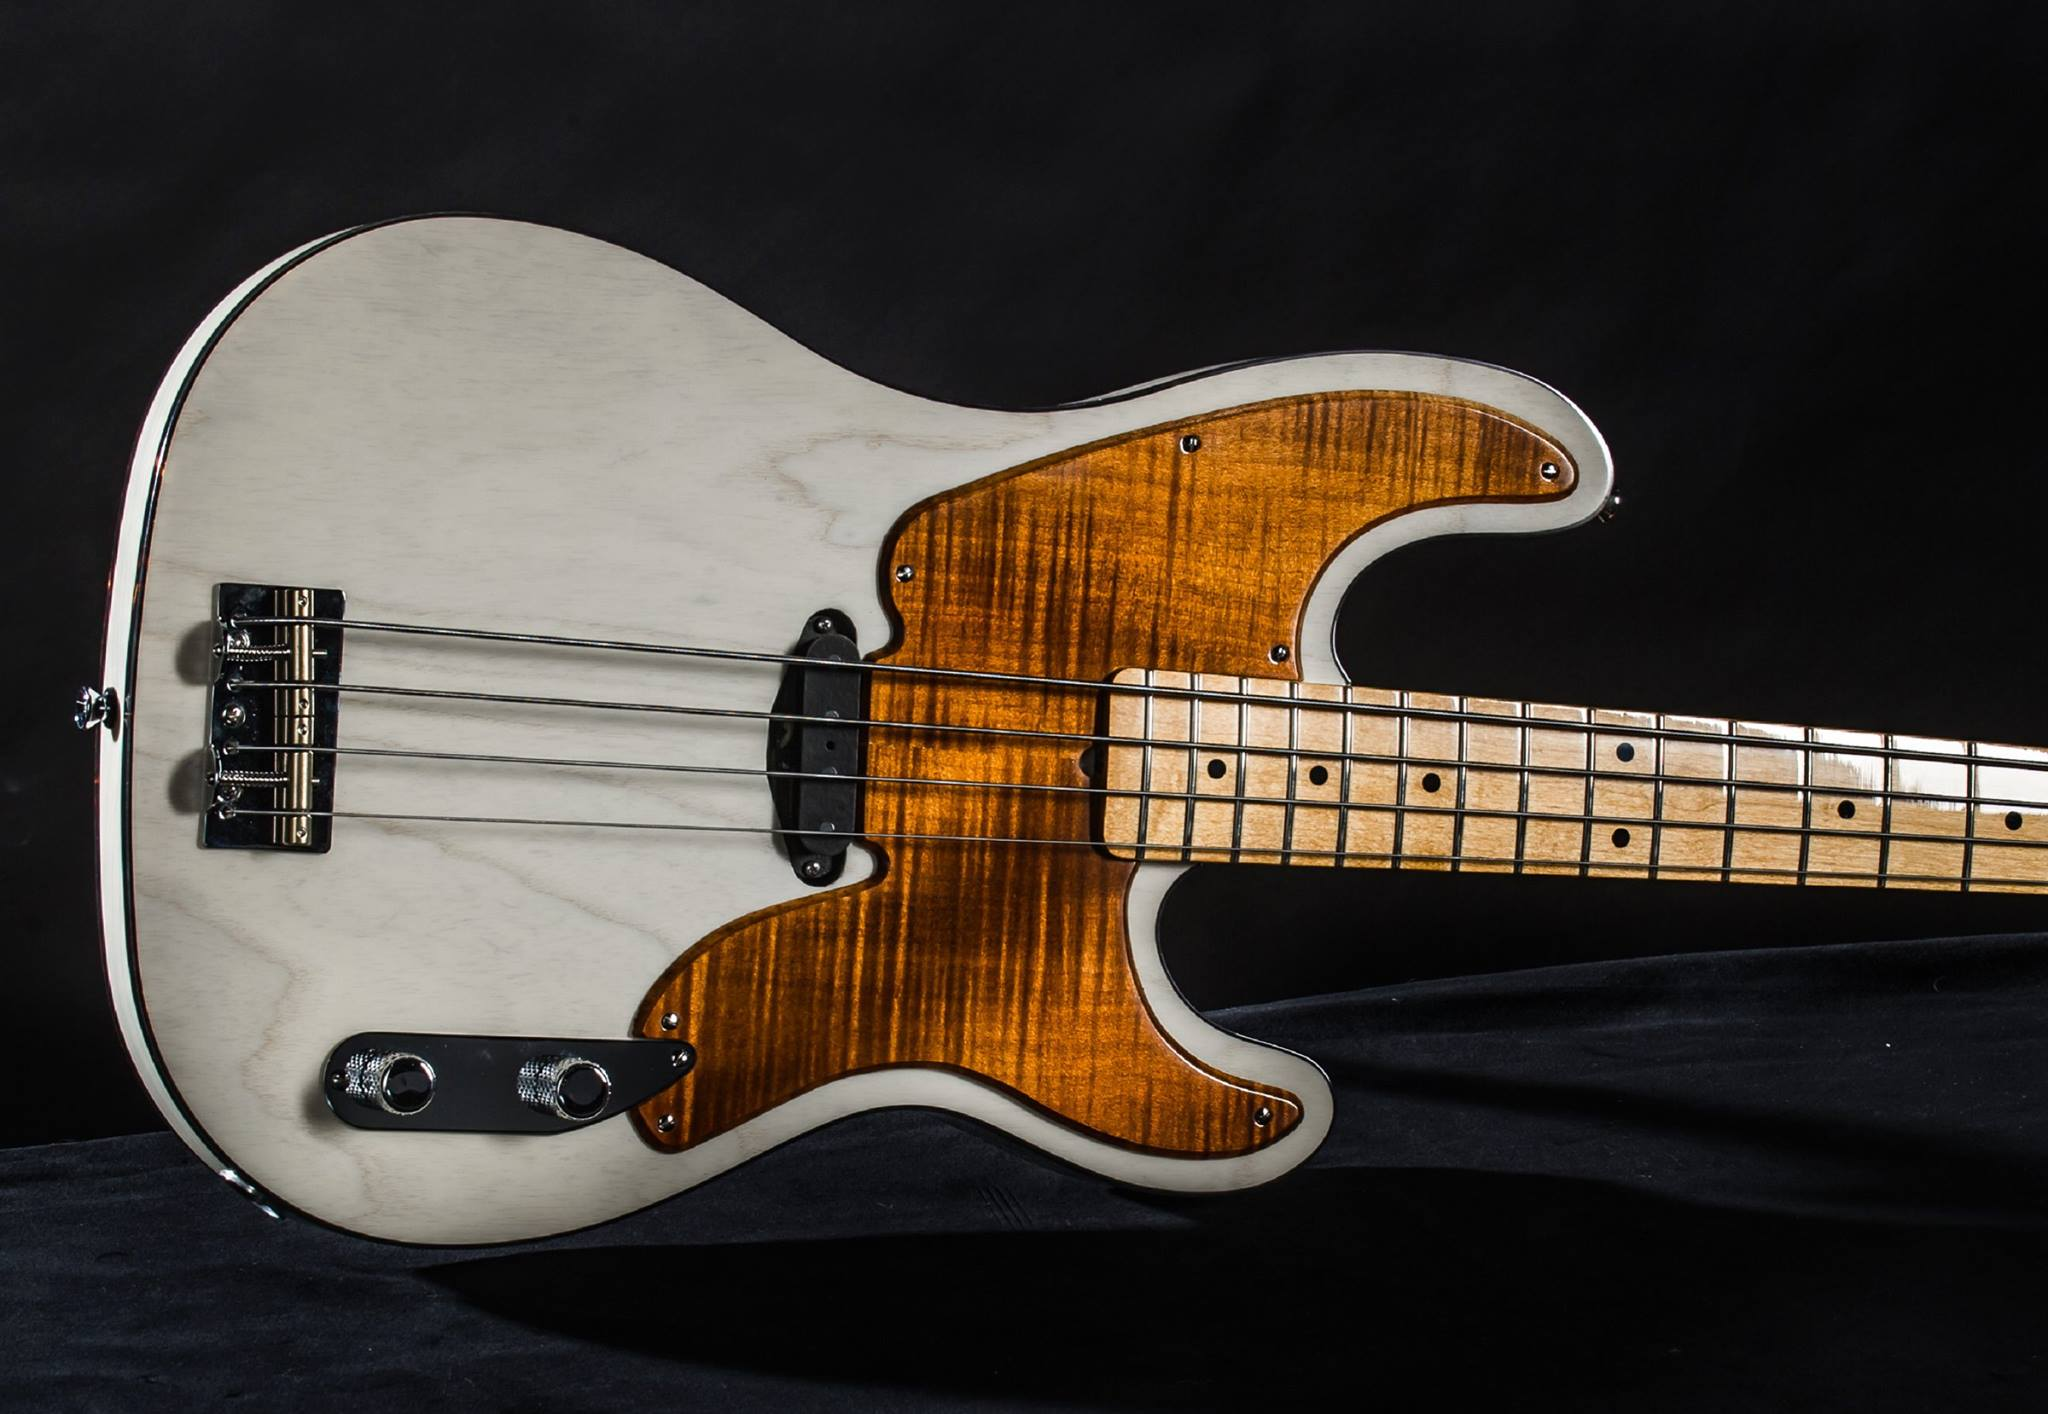 Milk White T Bass w/Flamed Pickguard